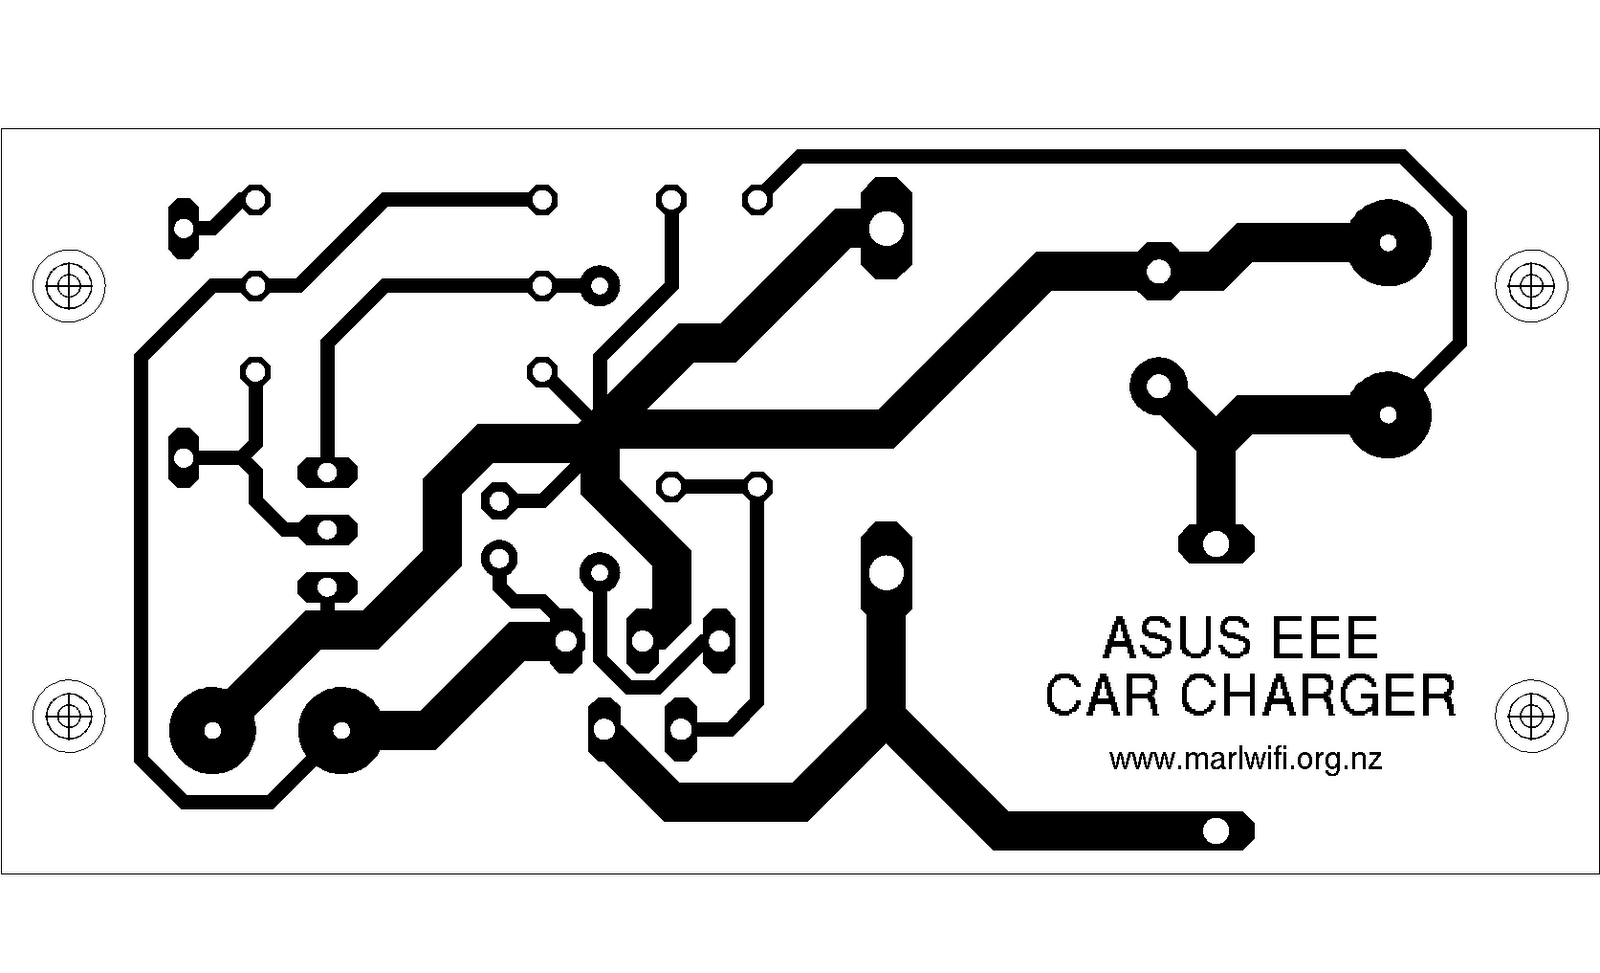 A 12v Car Charger For Asus Eee Notebook Circuit Diagram Laptop Power Adapter Typical Make Yourself Pcb Using The Template Below